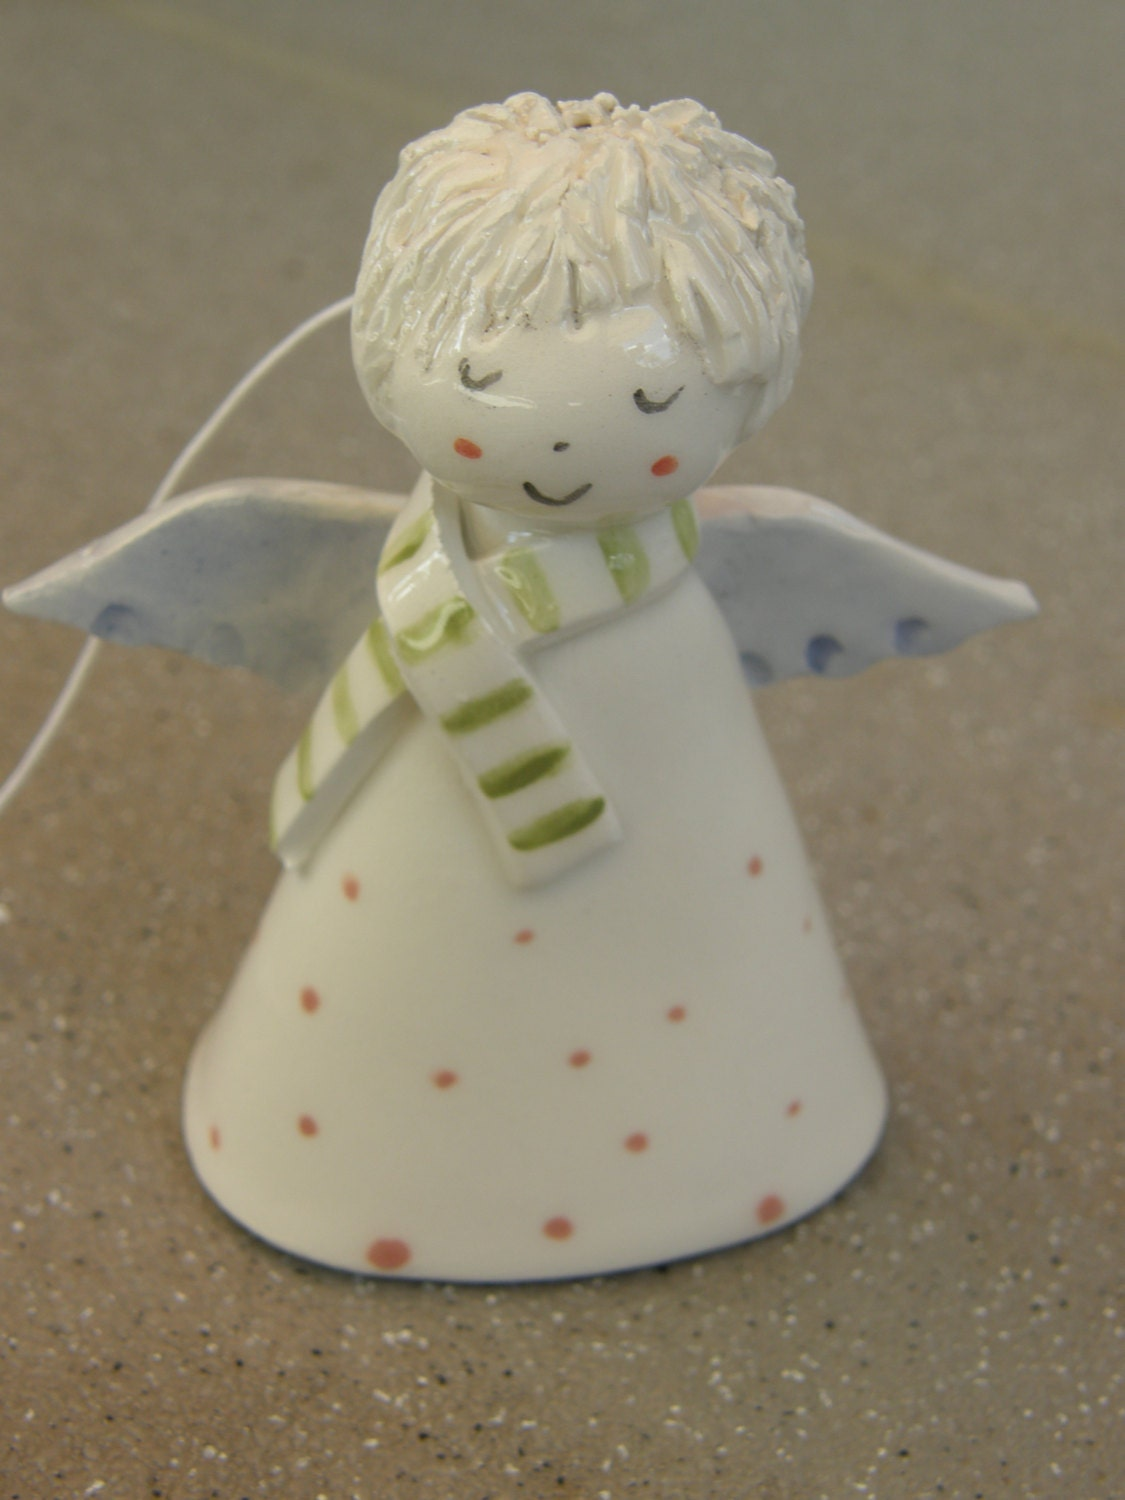 Christmas Pottery Barn Knock Offs And Others Too: Ceramic Angel Bell Christmas Angel Ceramic Bell White